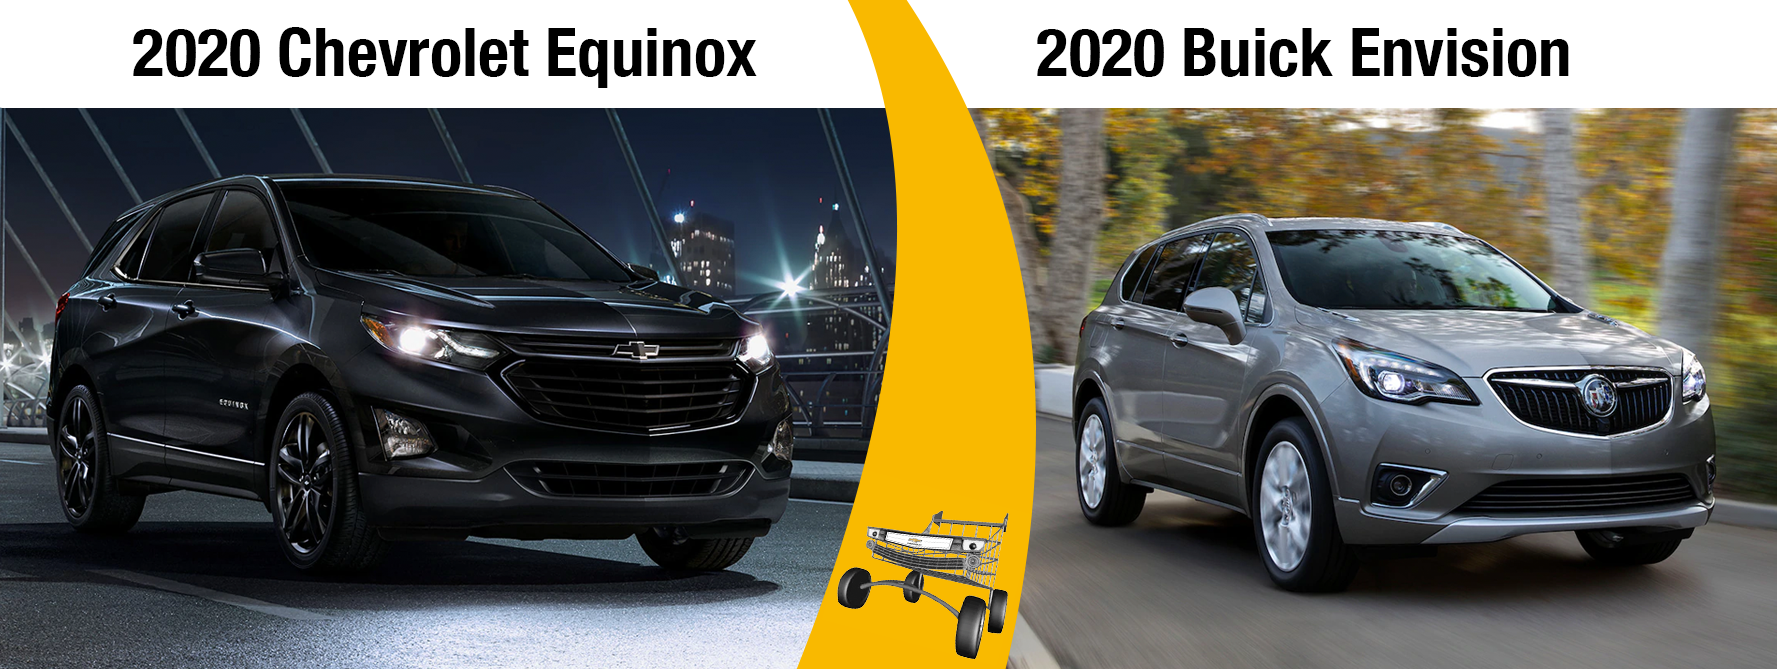 2020 Chevy Equinox at Chevy of Homewood